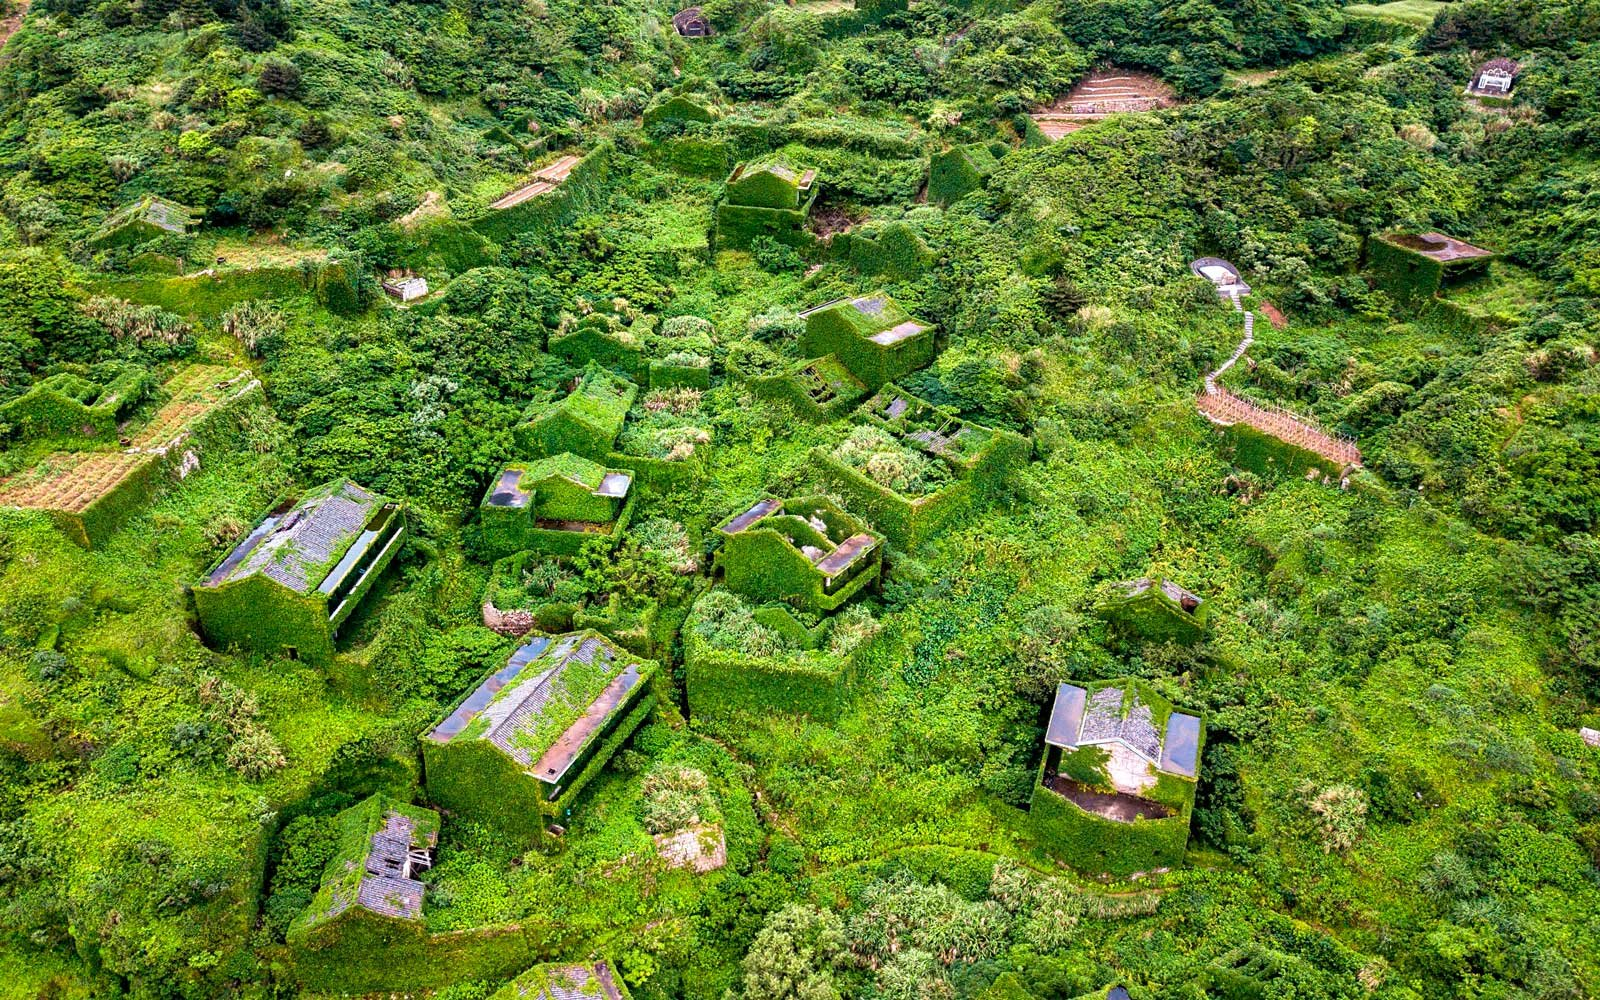 Aerial of overgrown green village in China